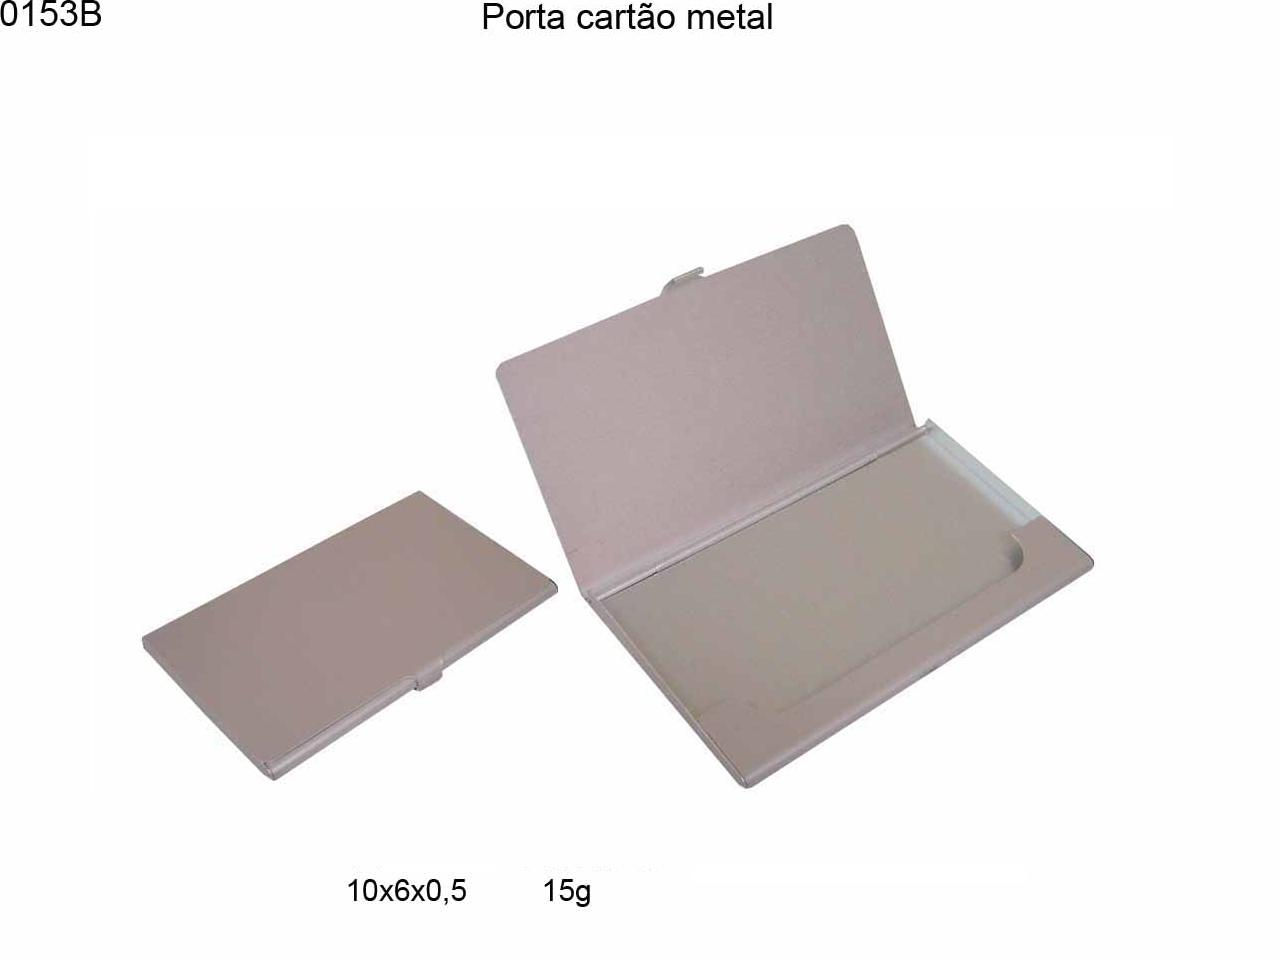 Porta cartao metal (0153B)